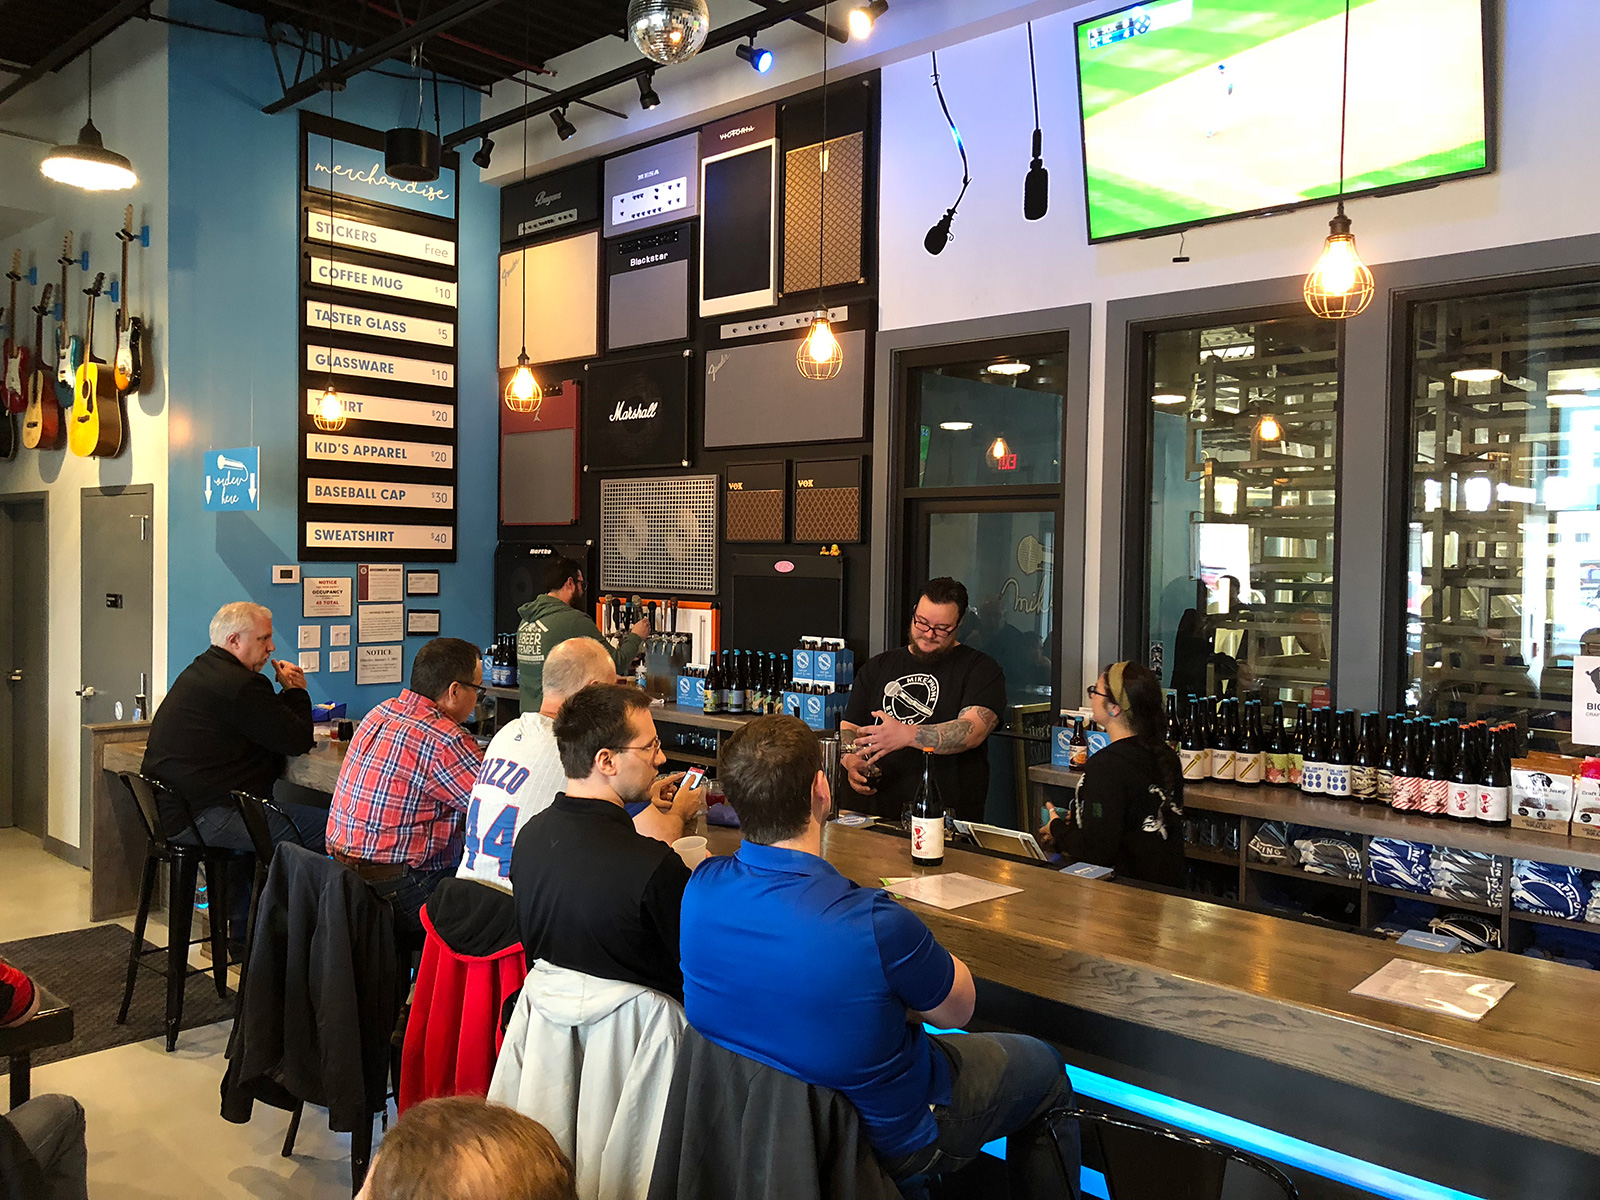 Mikerphone Brewing in Elk Grove Village, IL by Jets Like Taxis / Hopsmash